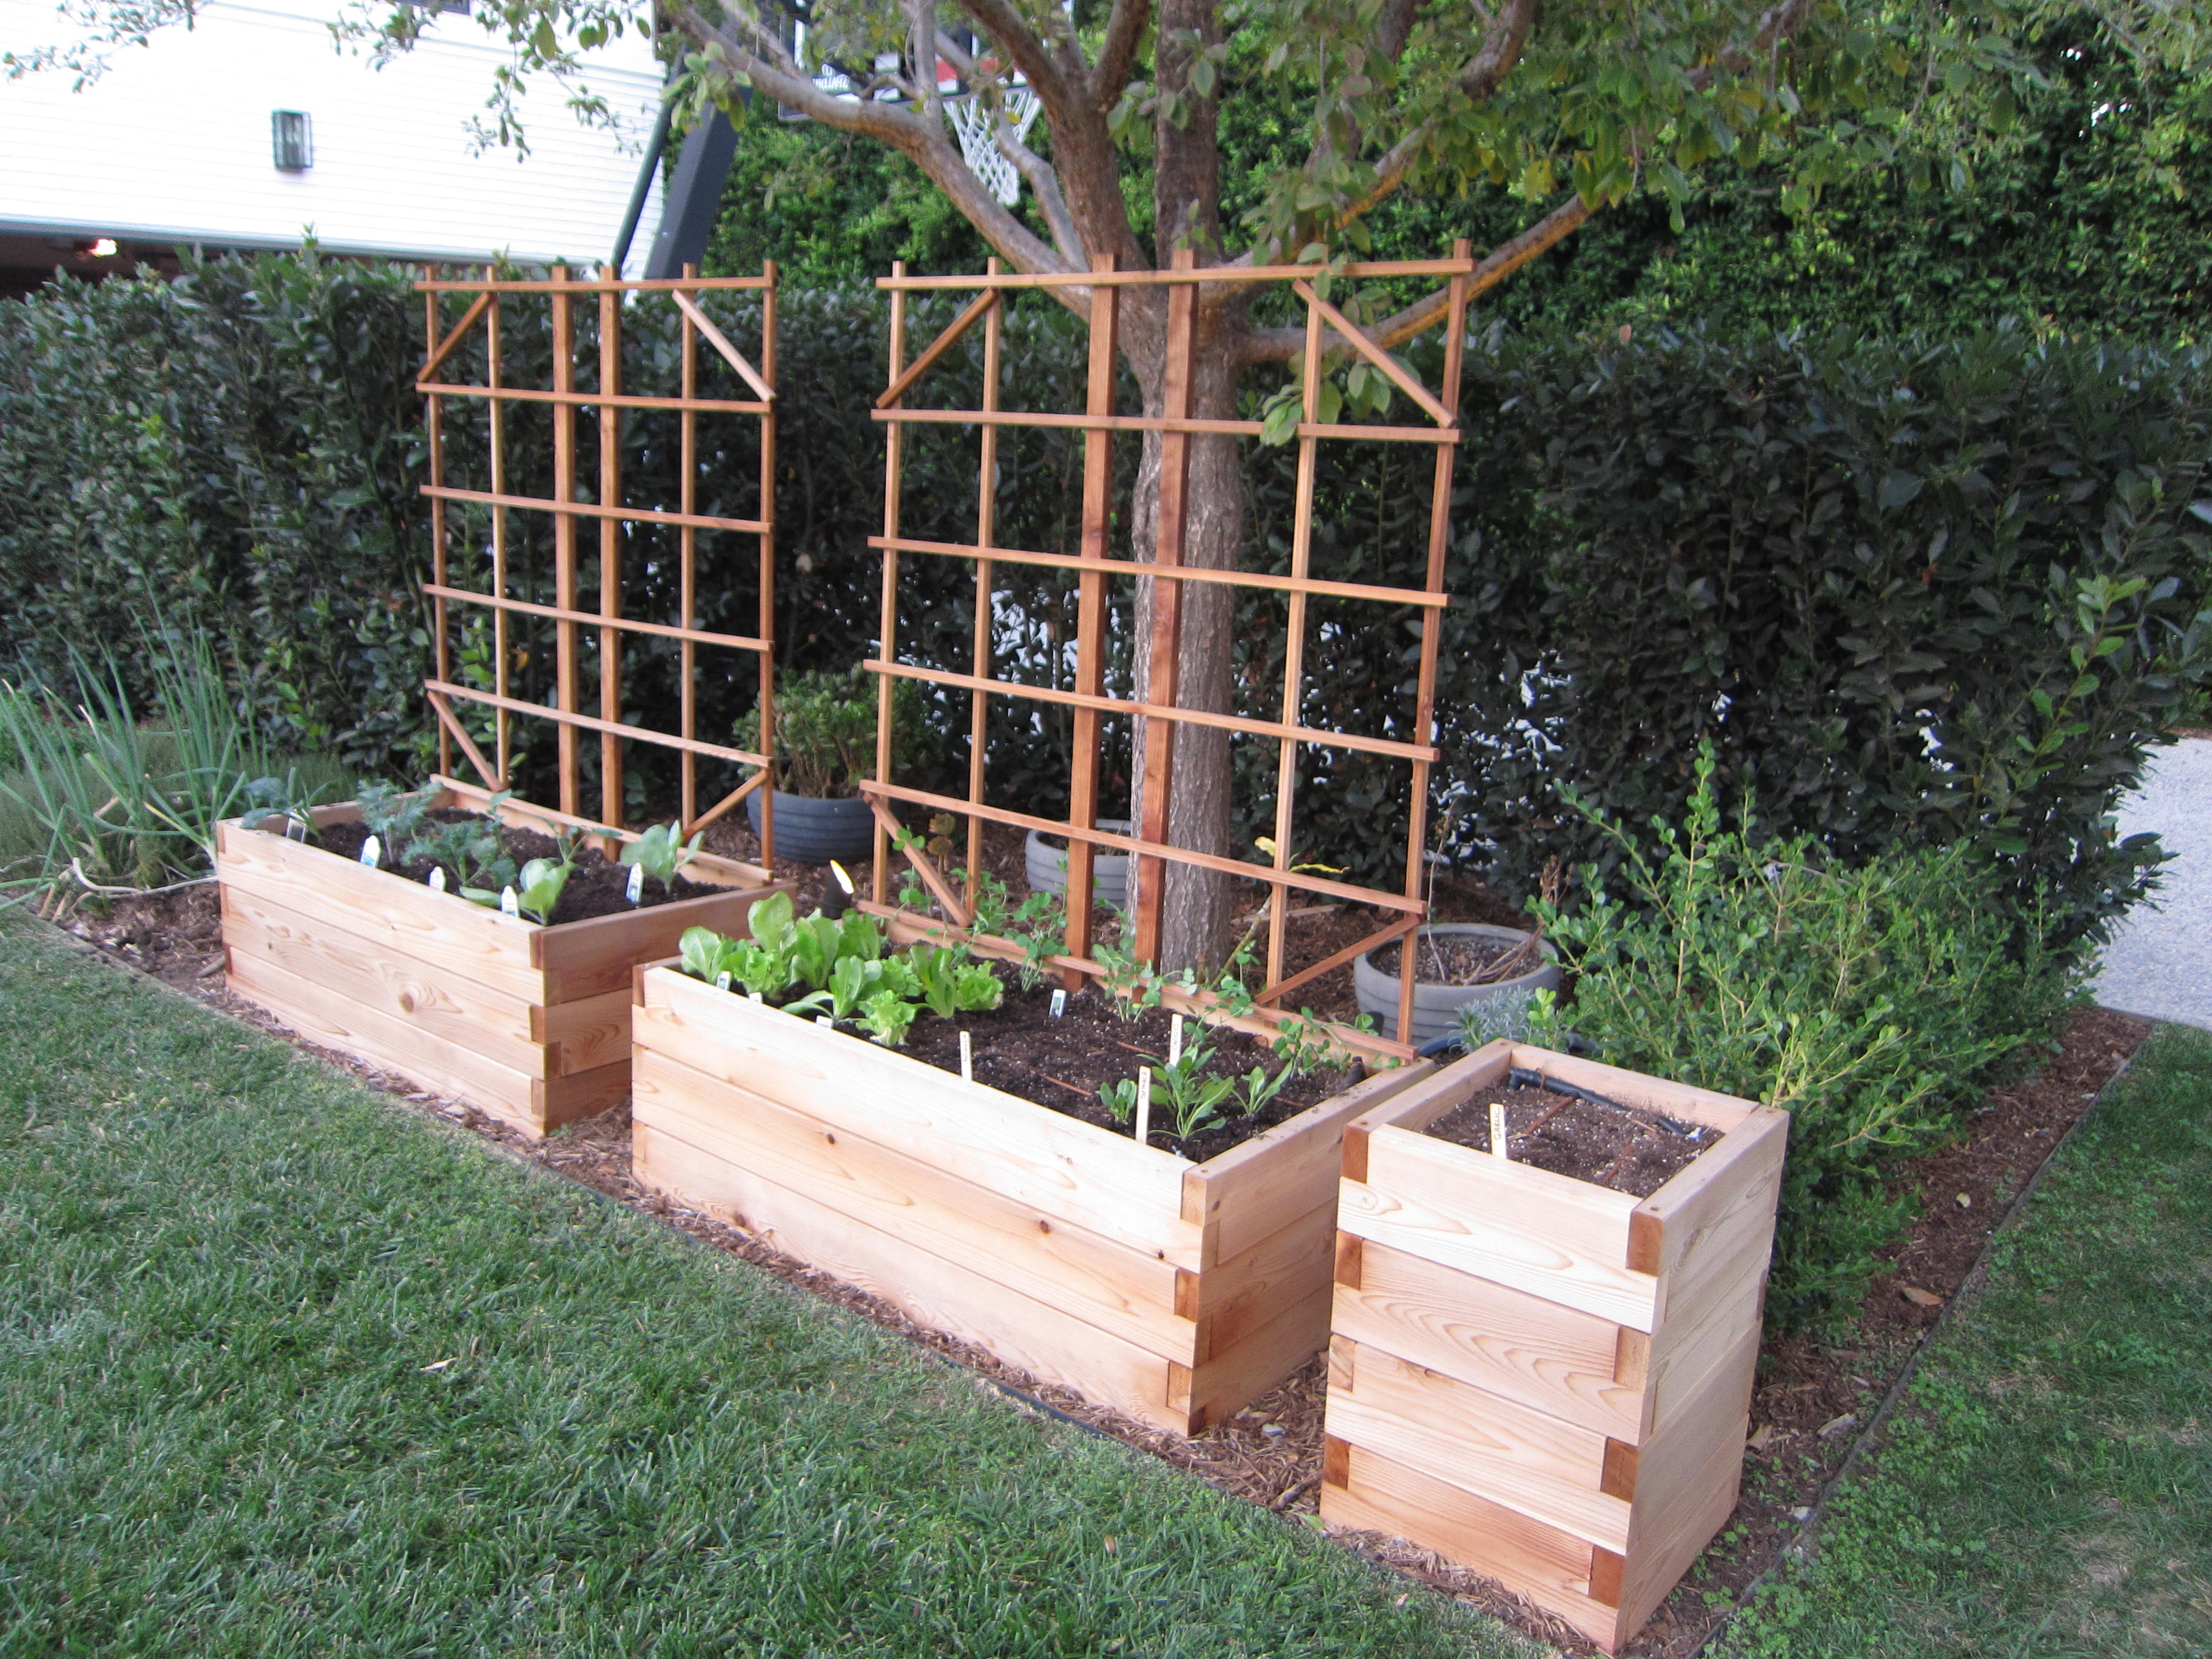 The finished product is a fun starter garden the whole family can enjoy.